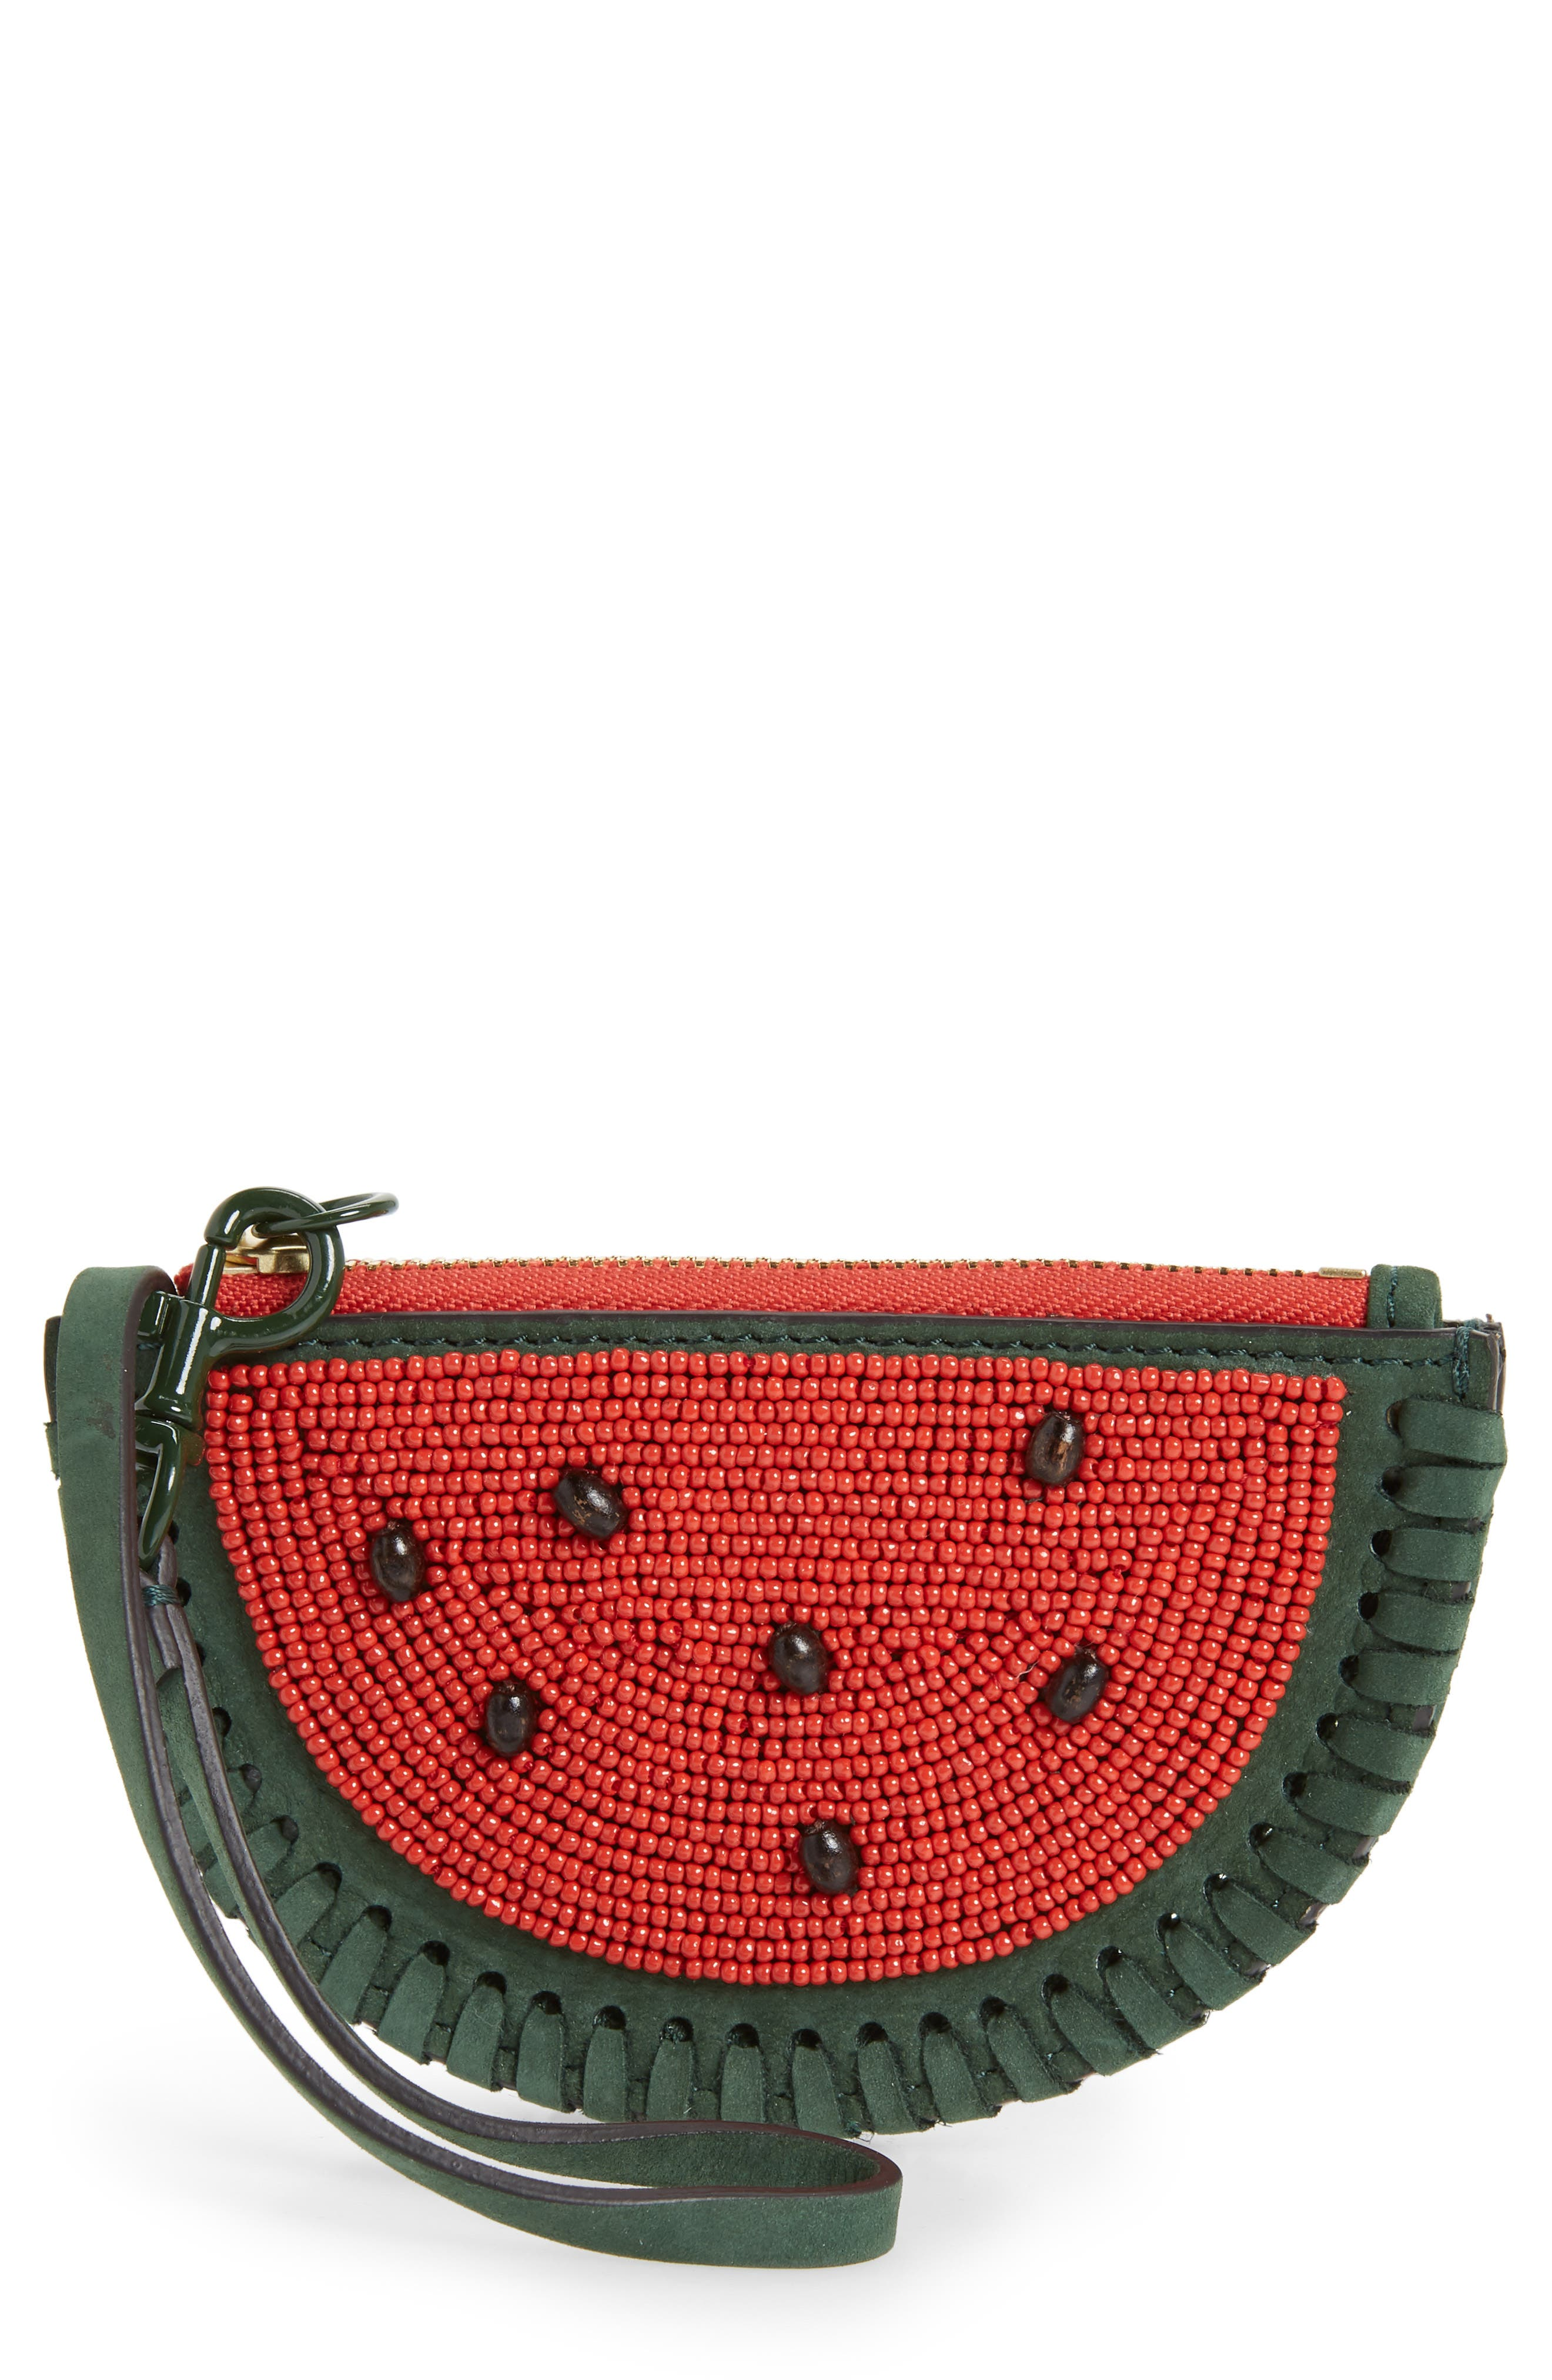 Watermelon Leather Coin Pouch,                             Main thumbnail 1, color,                             Banyan Green / Poppy Orange